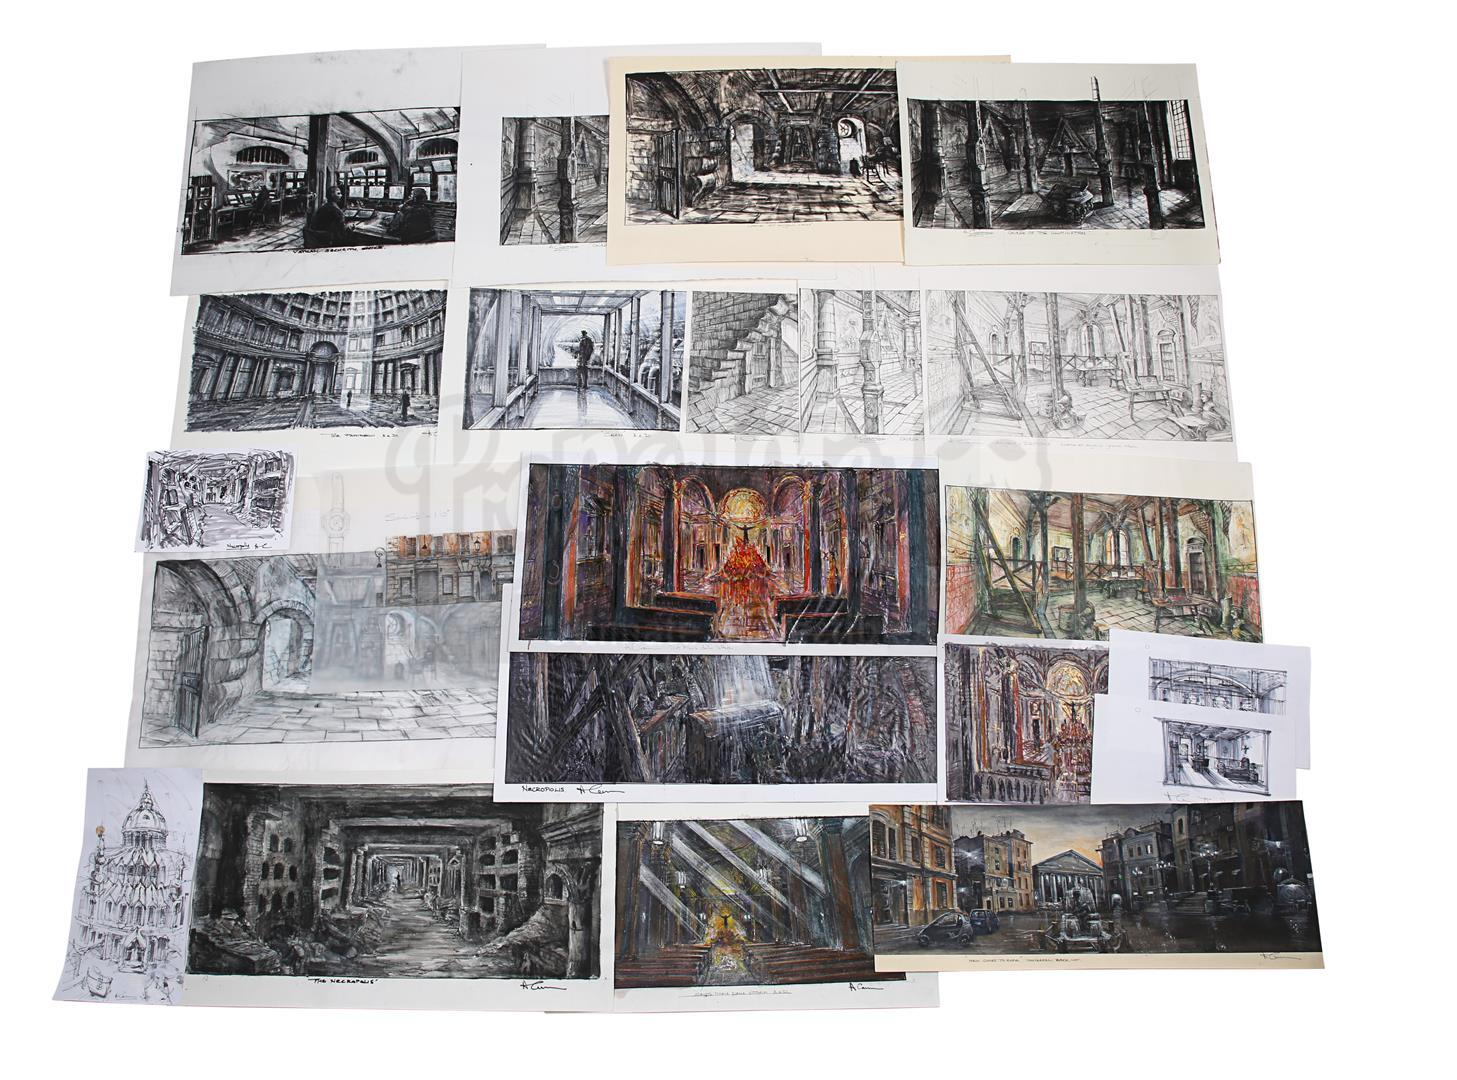 ANGELS & DEMONS (2009) - Collection of Allan Cameron Hand-painted and Printed Rome and Vatican City